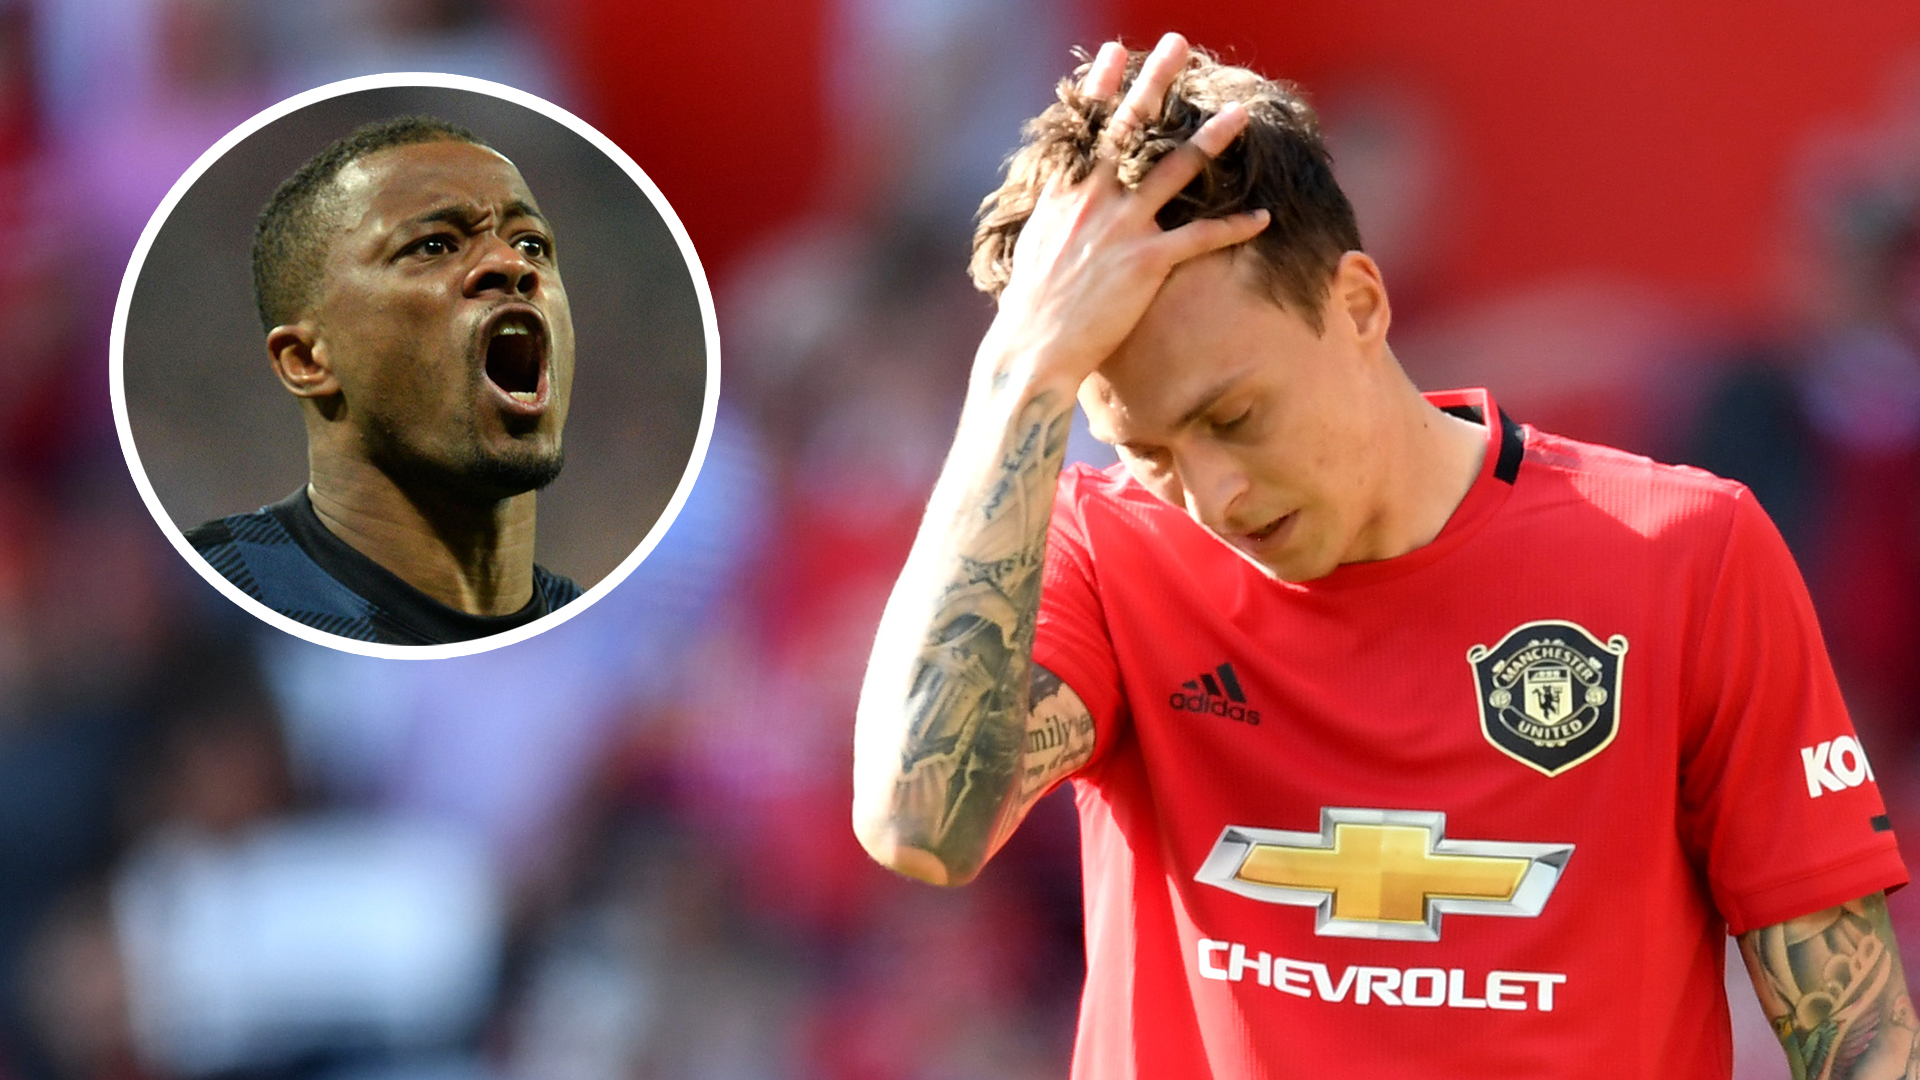 'It's killing me!' - Evra hurt by lack of respect for Man Utd & predicts when things will improve